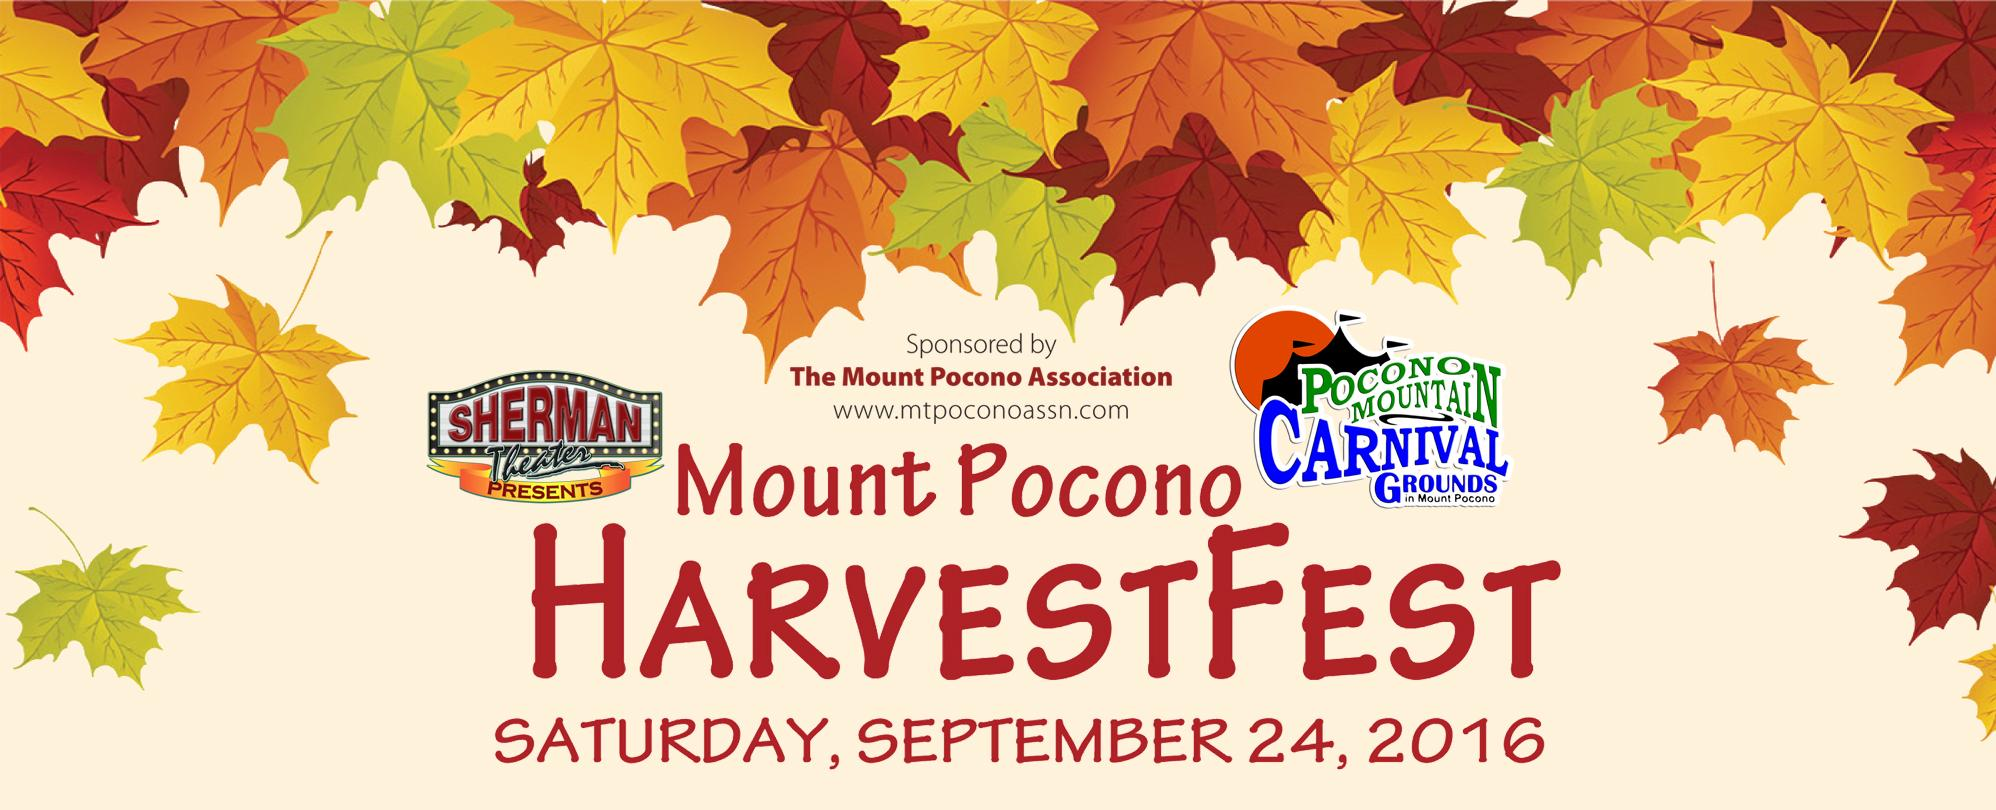 Mount Pocono HarvestFest *at the Pocono Mountain Carnival Grounds*